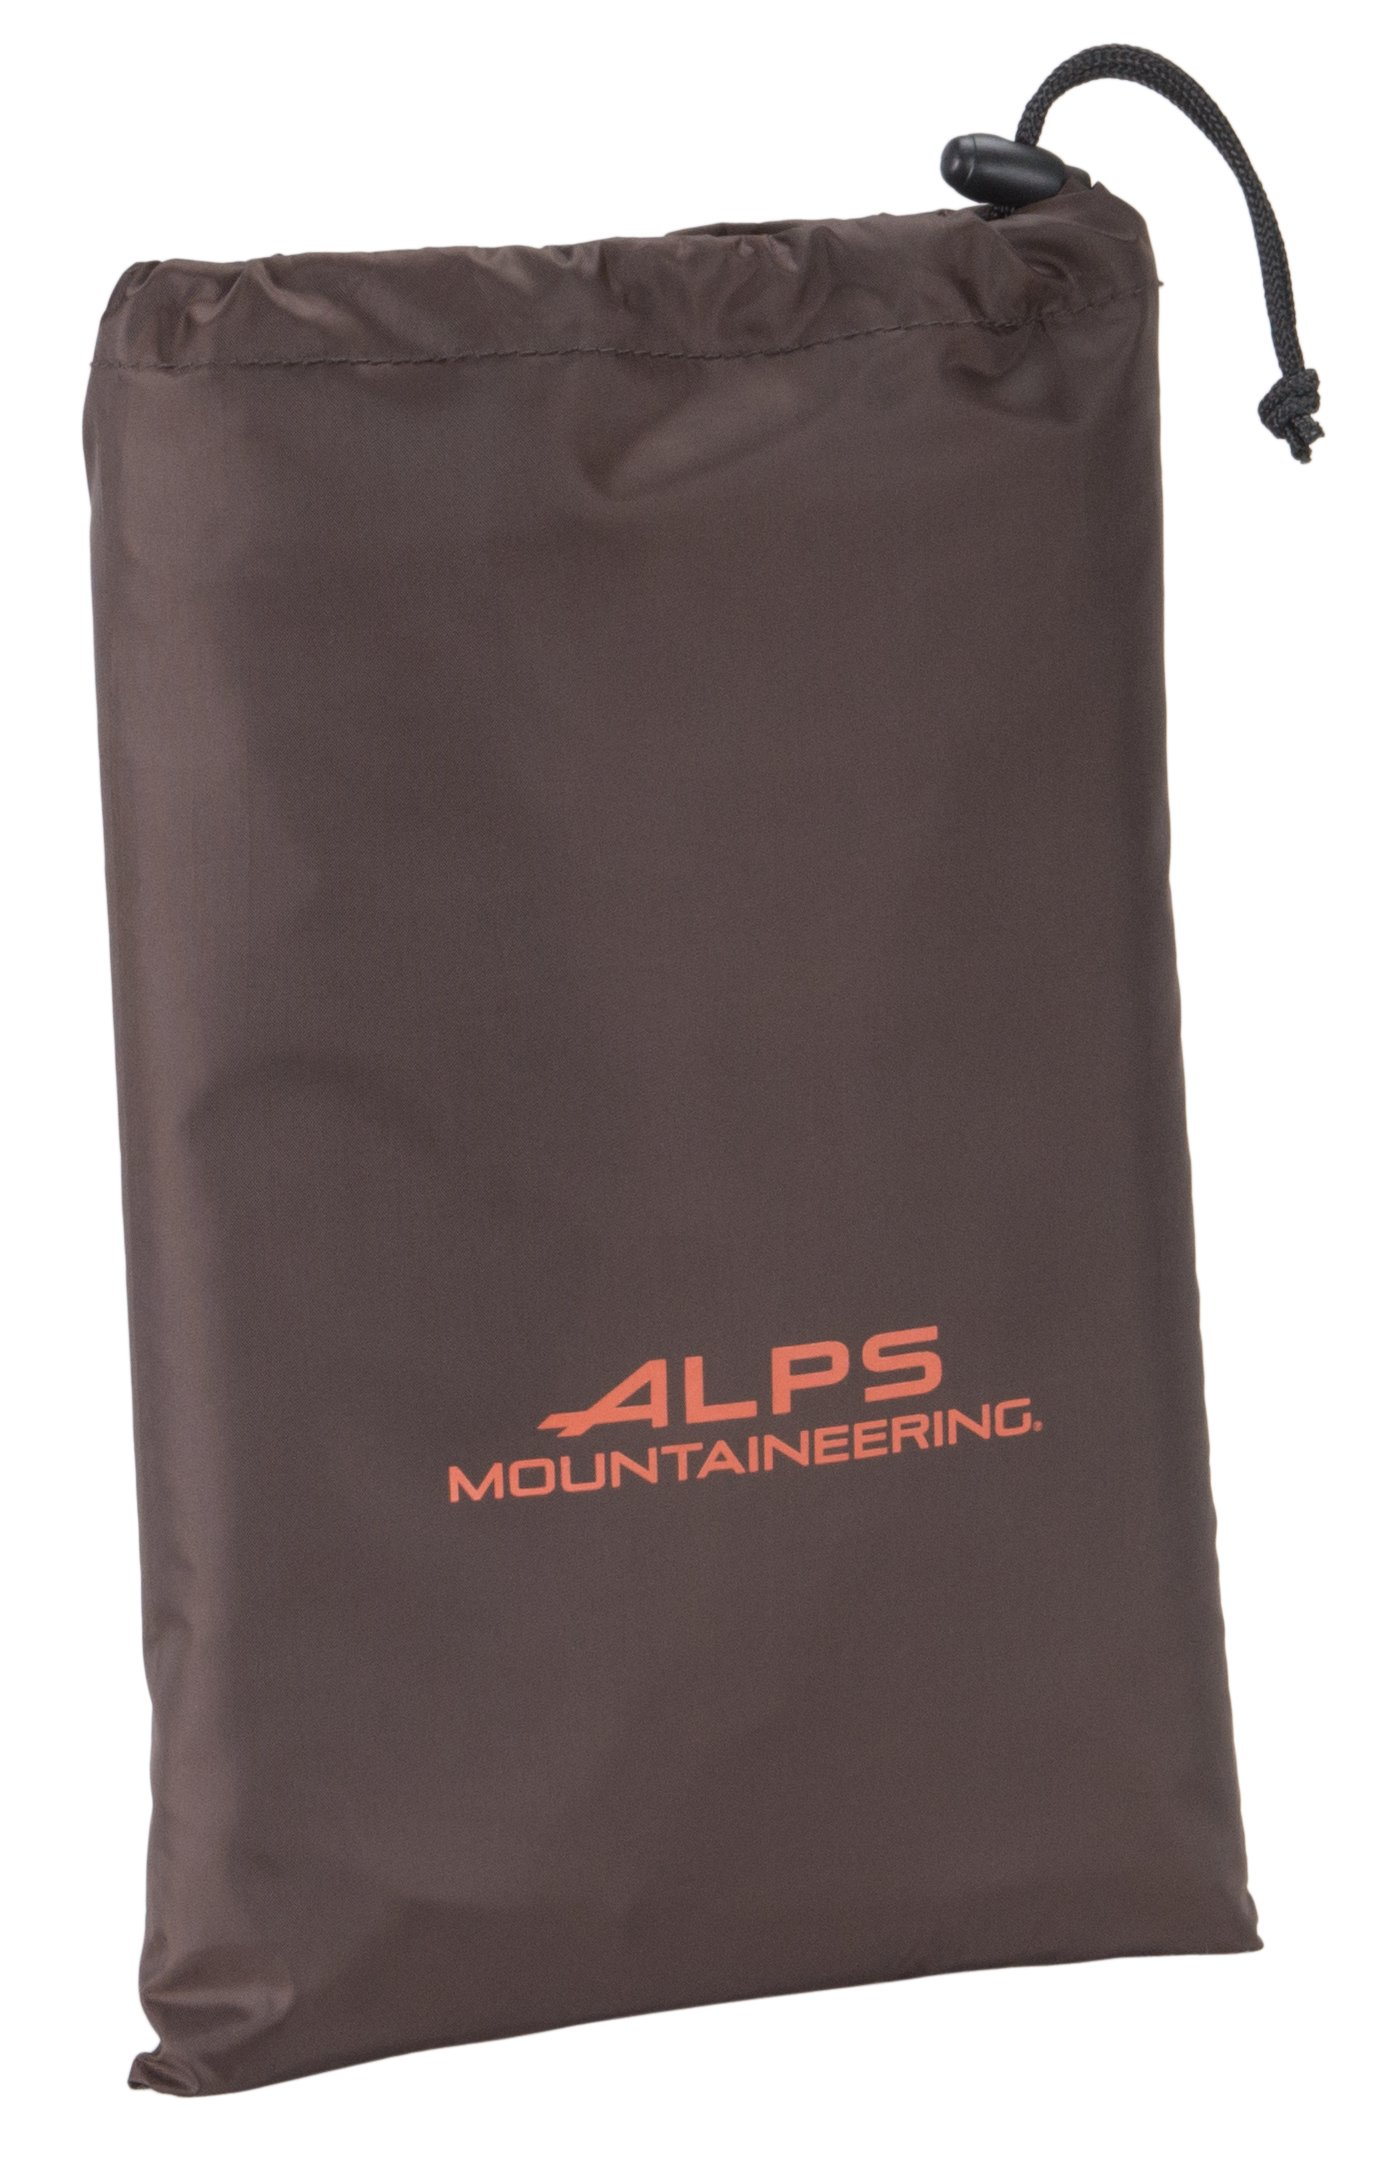 ALPS Mountaineering Chaos 3 Tent Floor Saver, Coal by ALPS Mountaineering